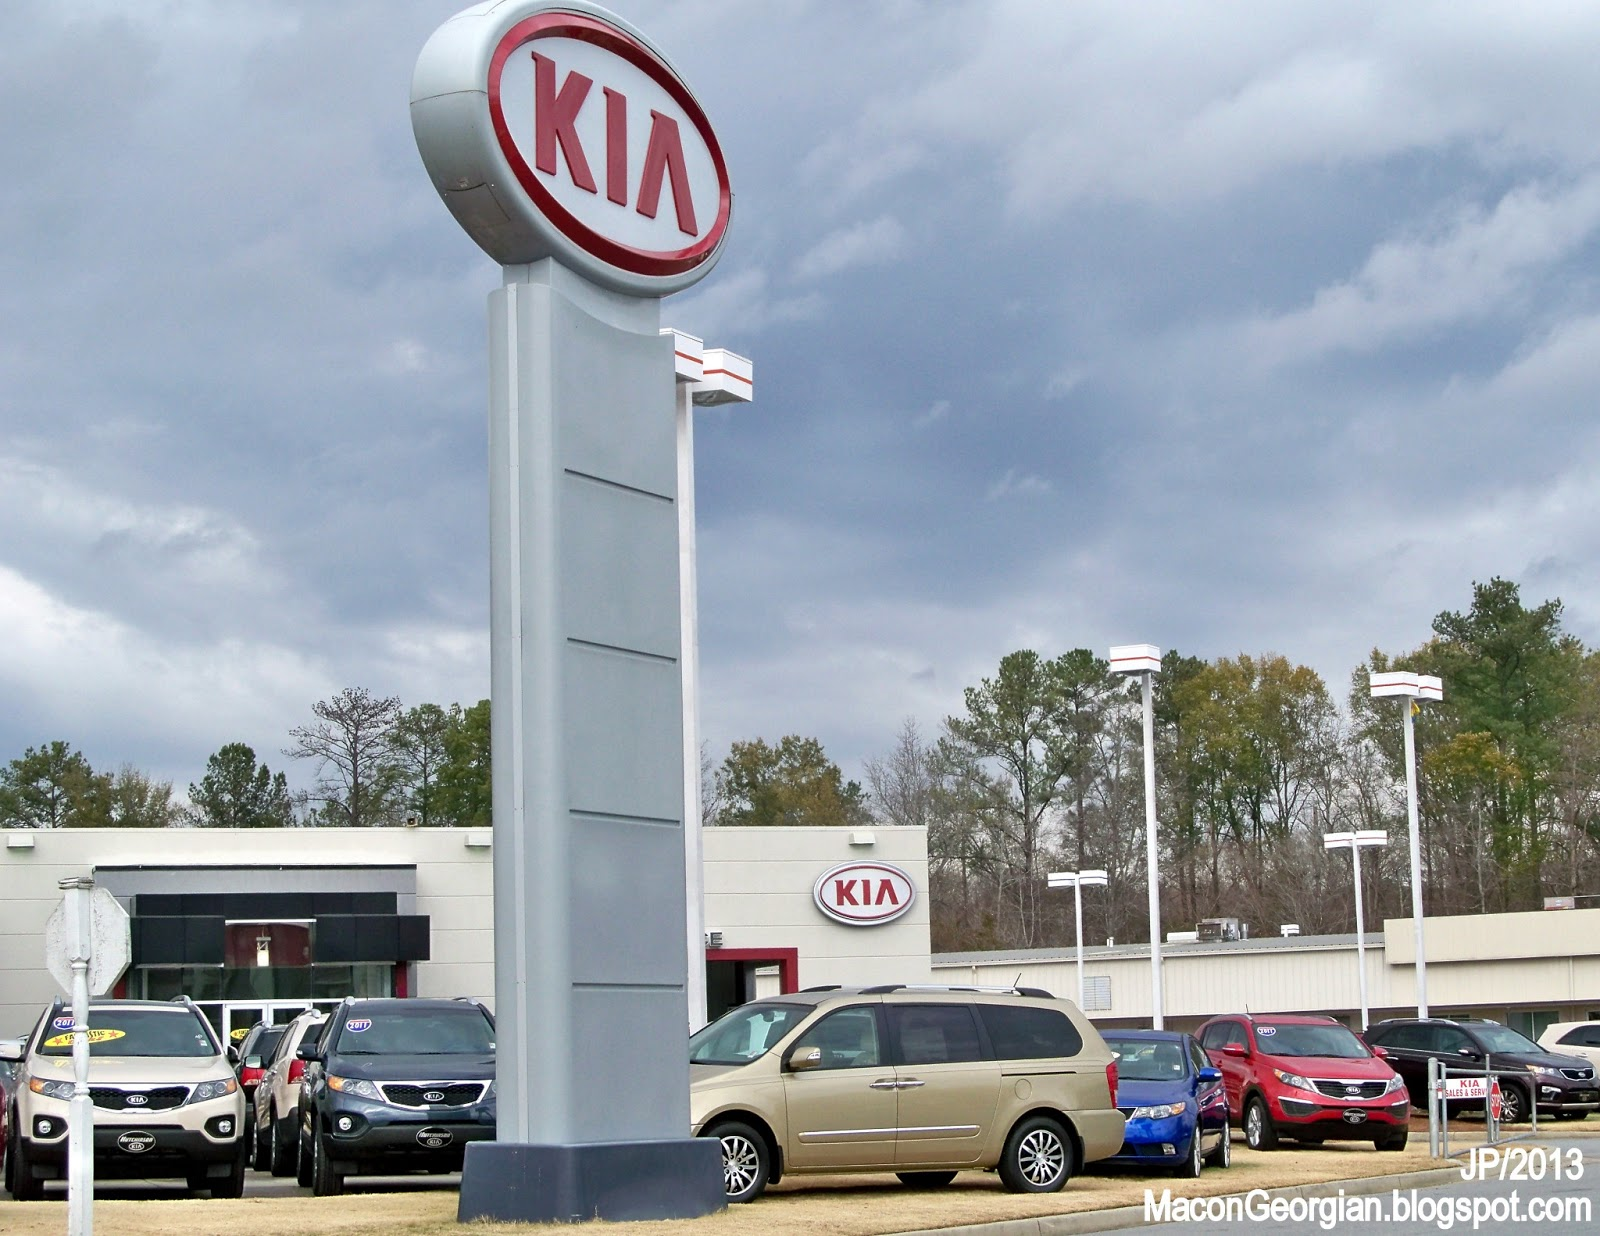 KIA HUTCHINSON MACON GEORGIA River Place Dr., Hutchinson Kia Automotive Car  Sales Auto Service Bibb County Macon GA.